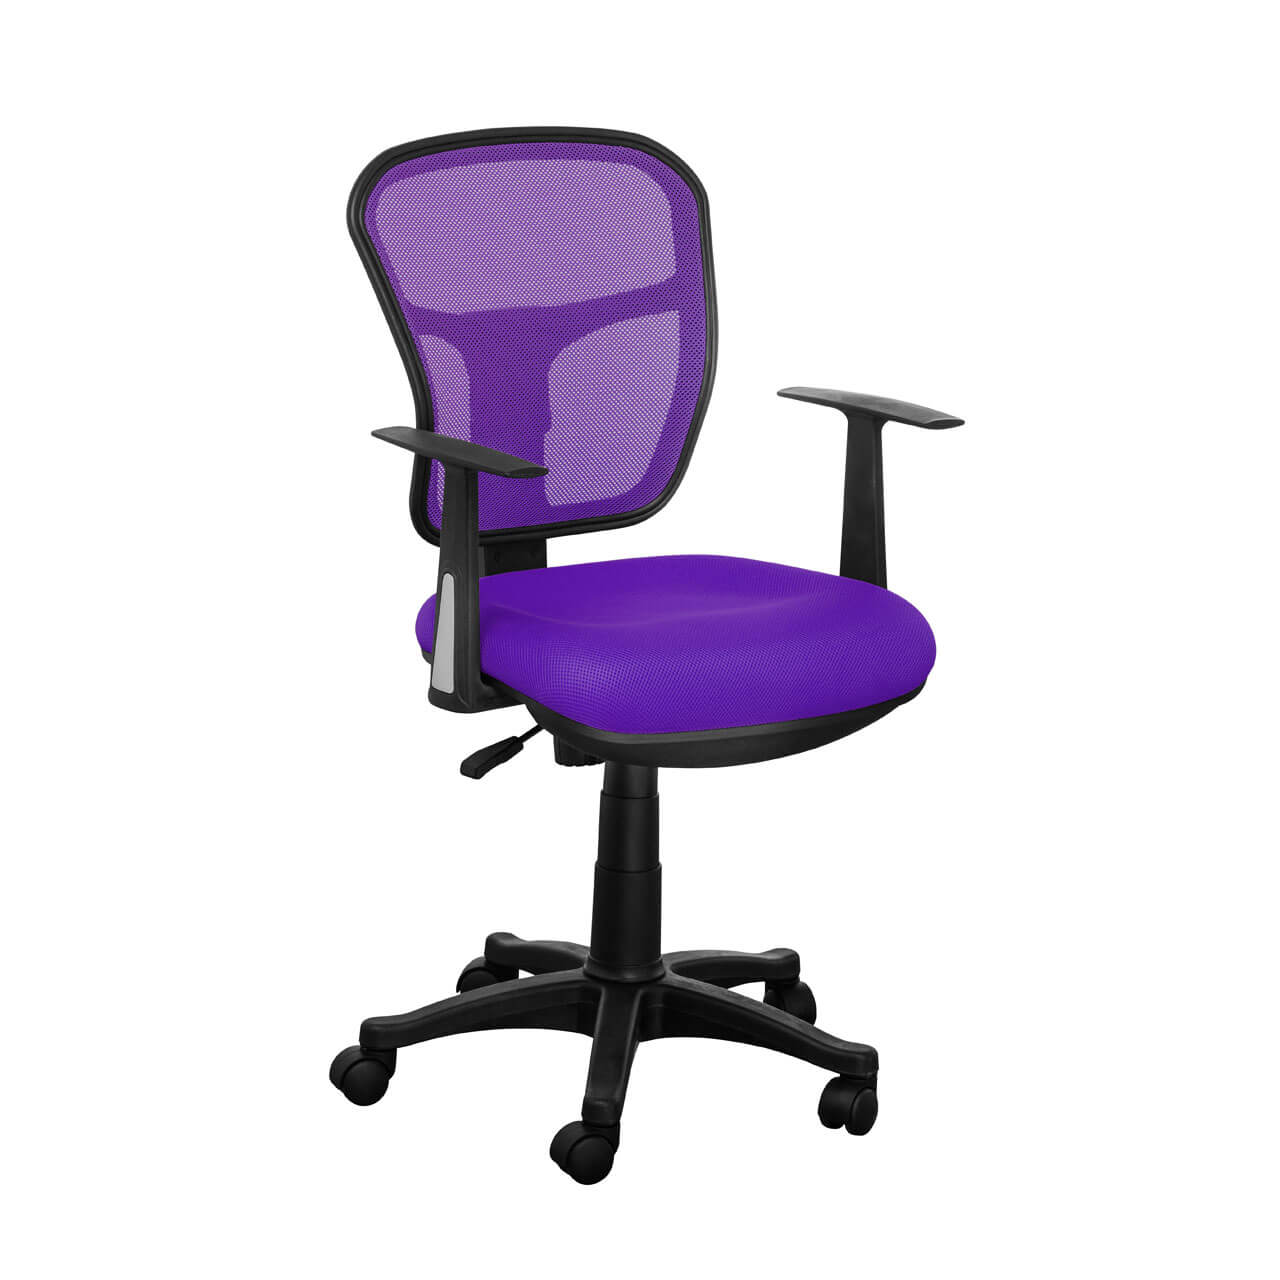 Luna Purple Mesh Office Chair